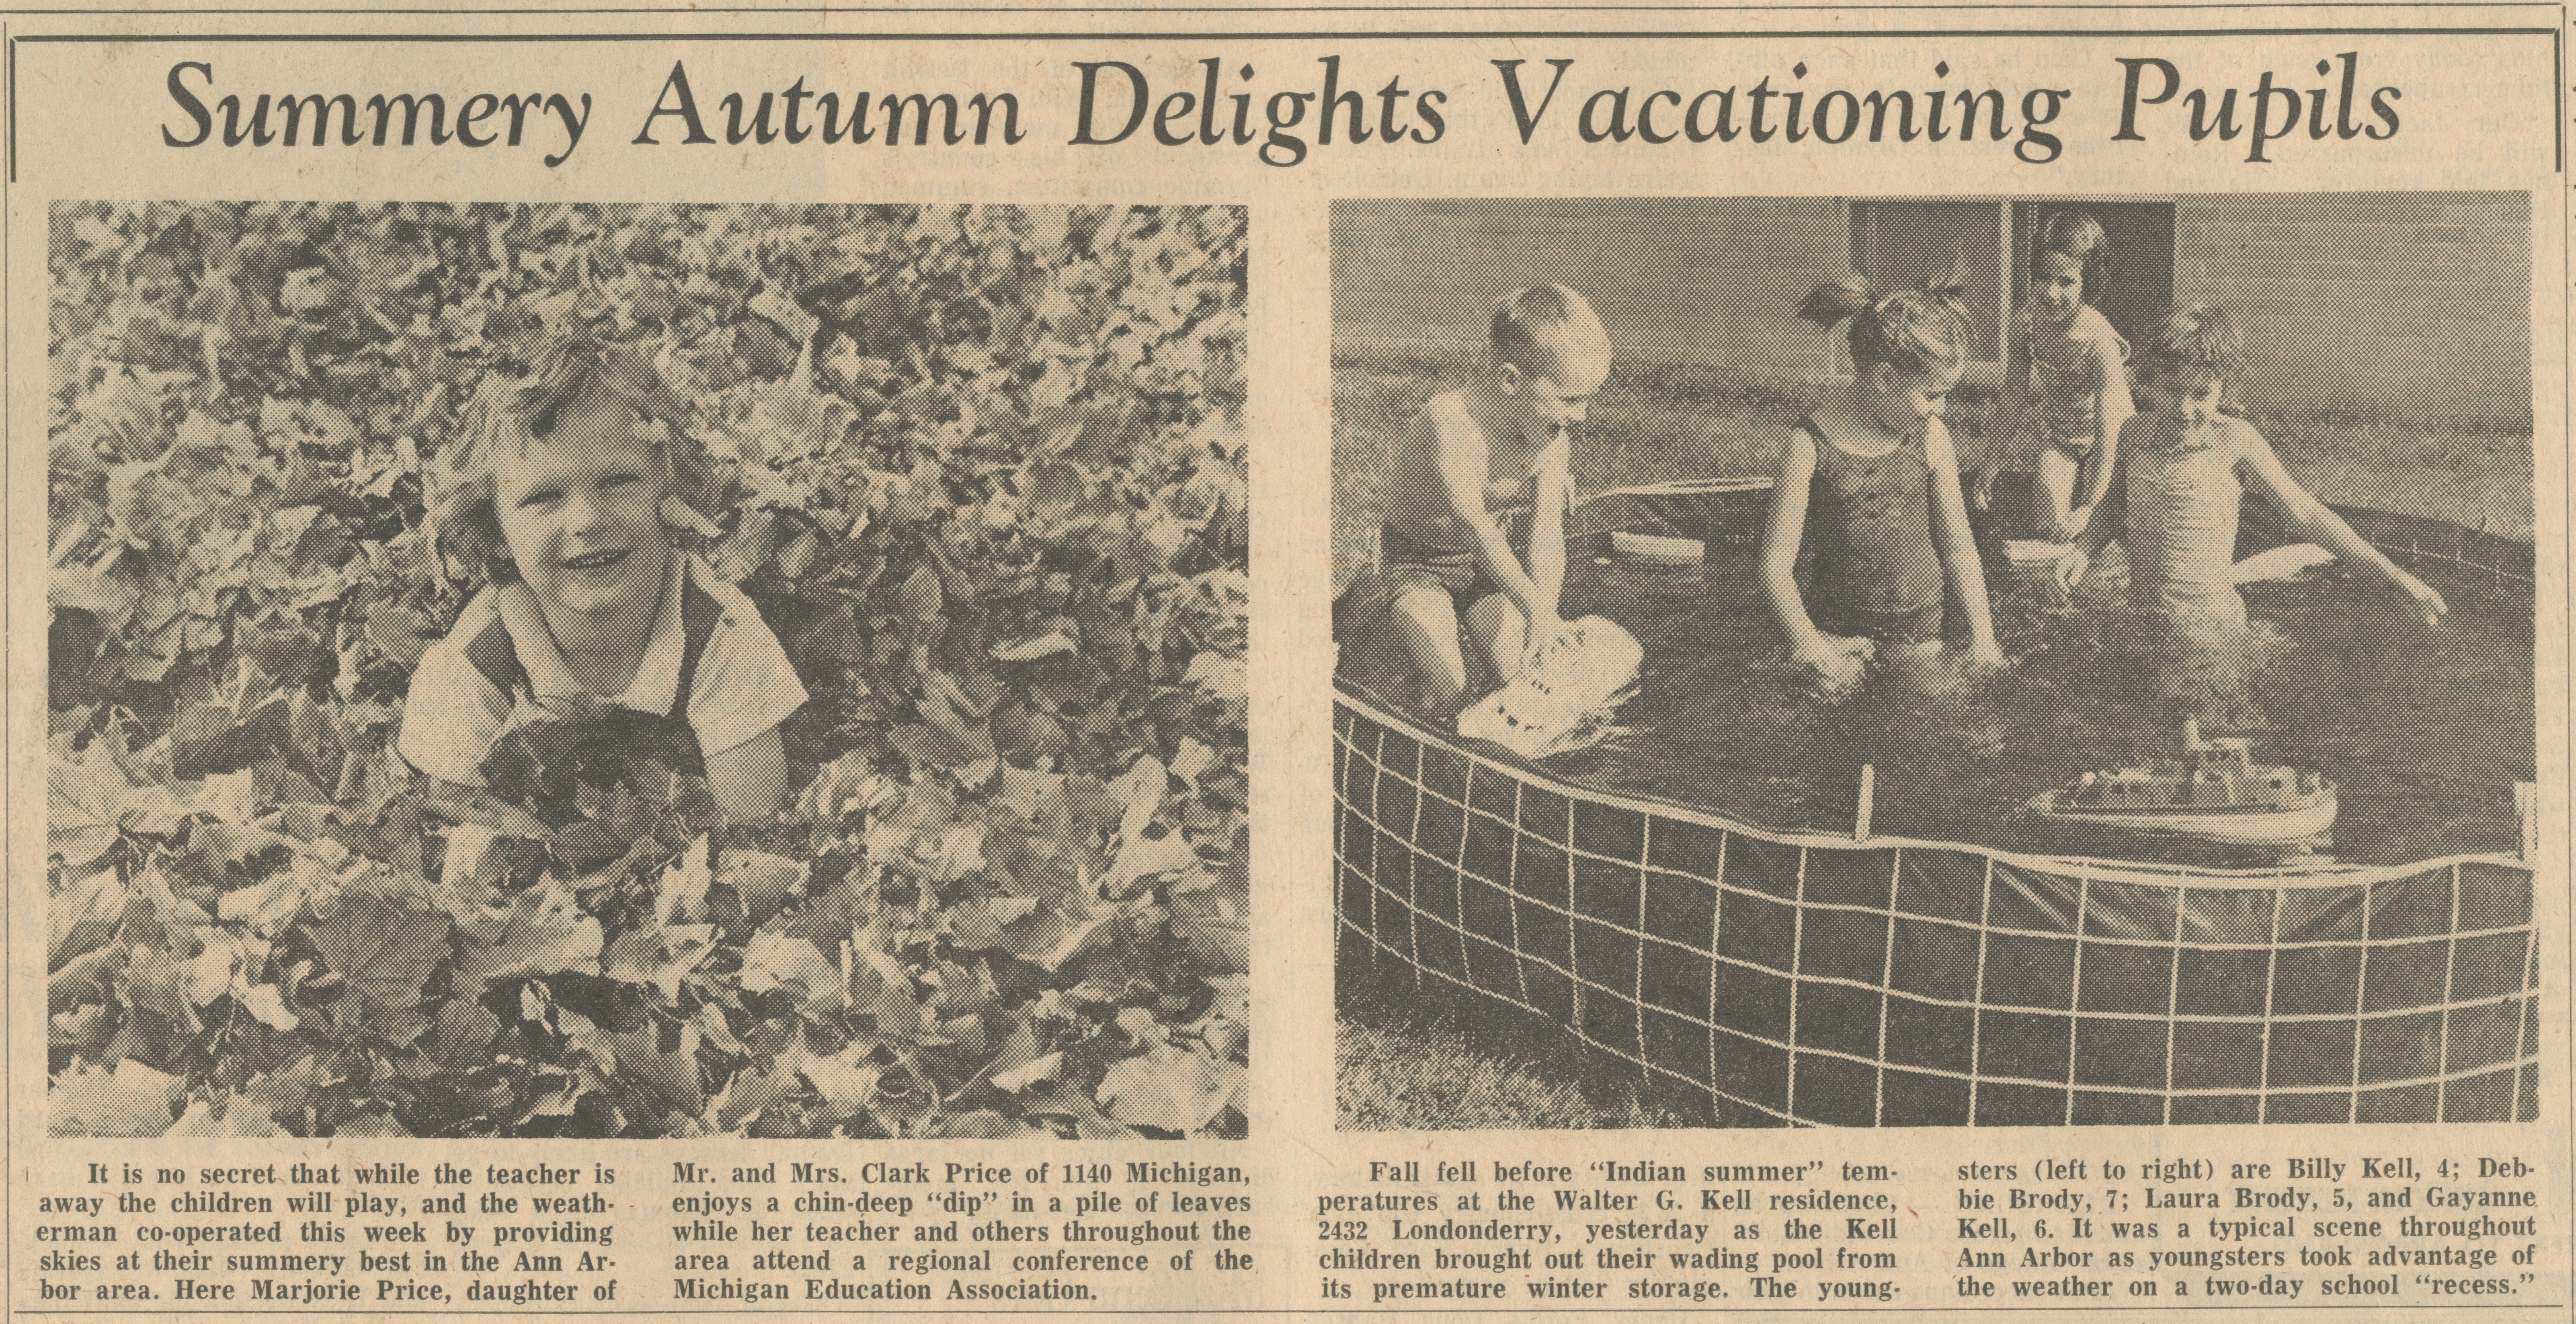 Summery Autumn Delights Vacationing Pupils image